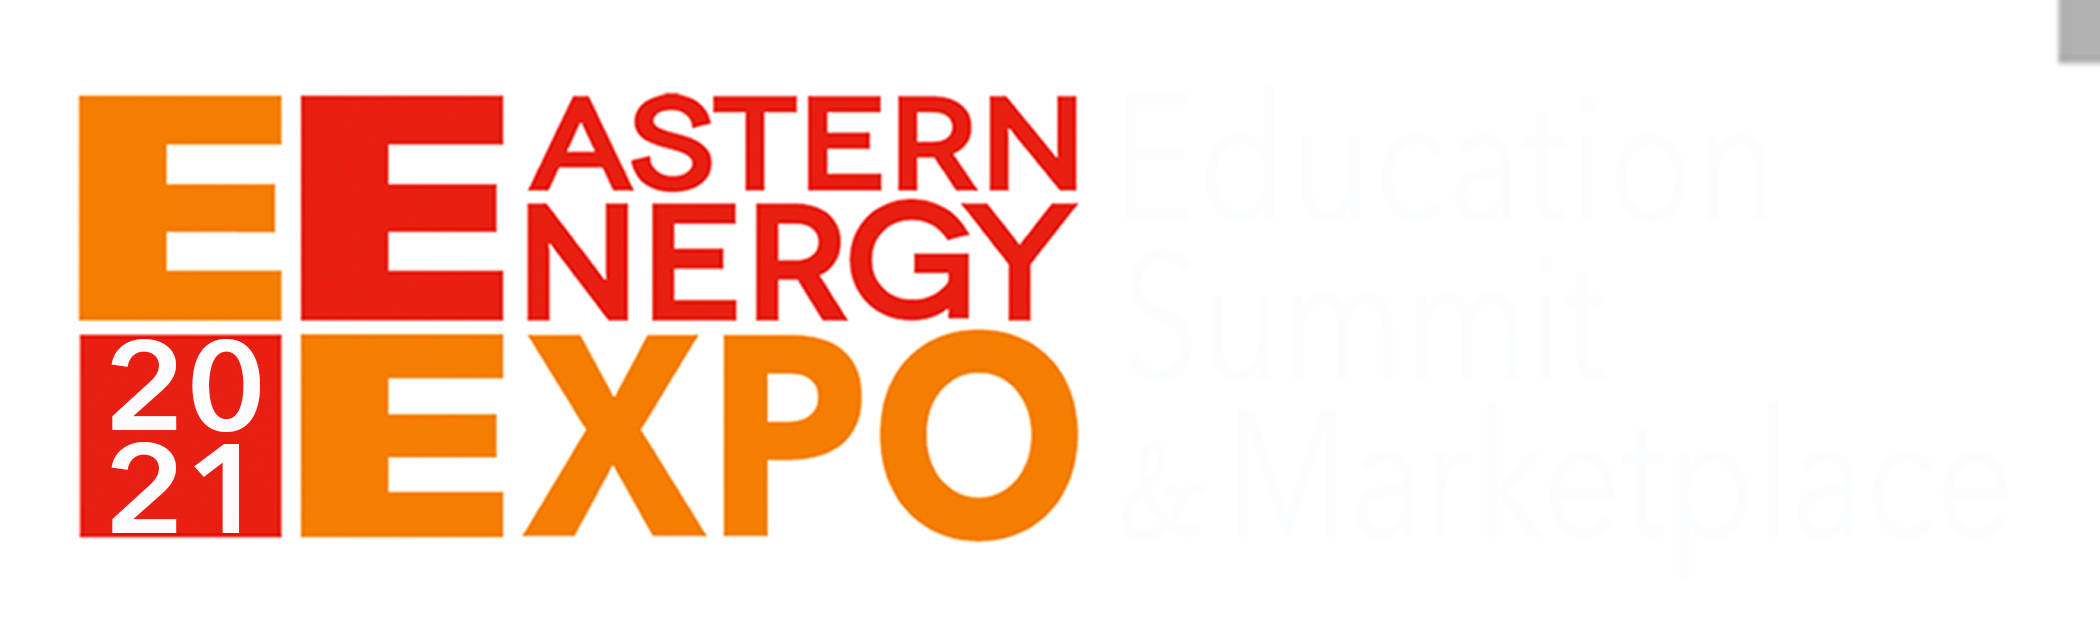 Eastern Energy Expo Education Summit & Marketplace